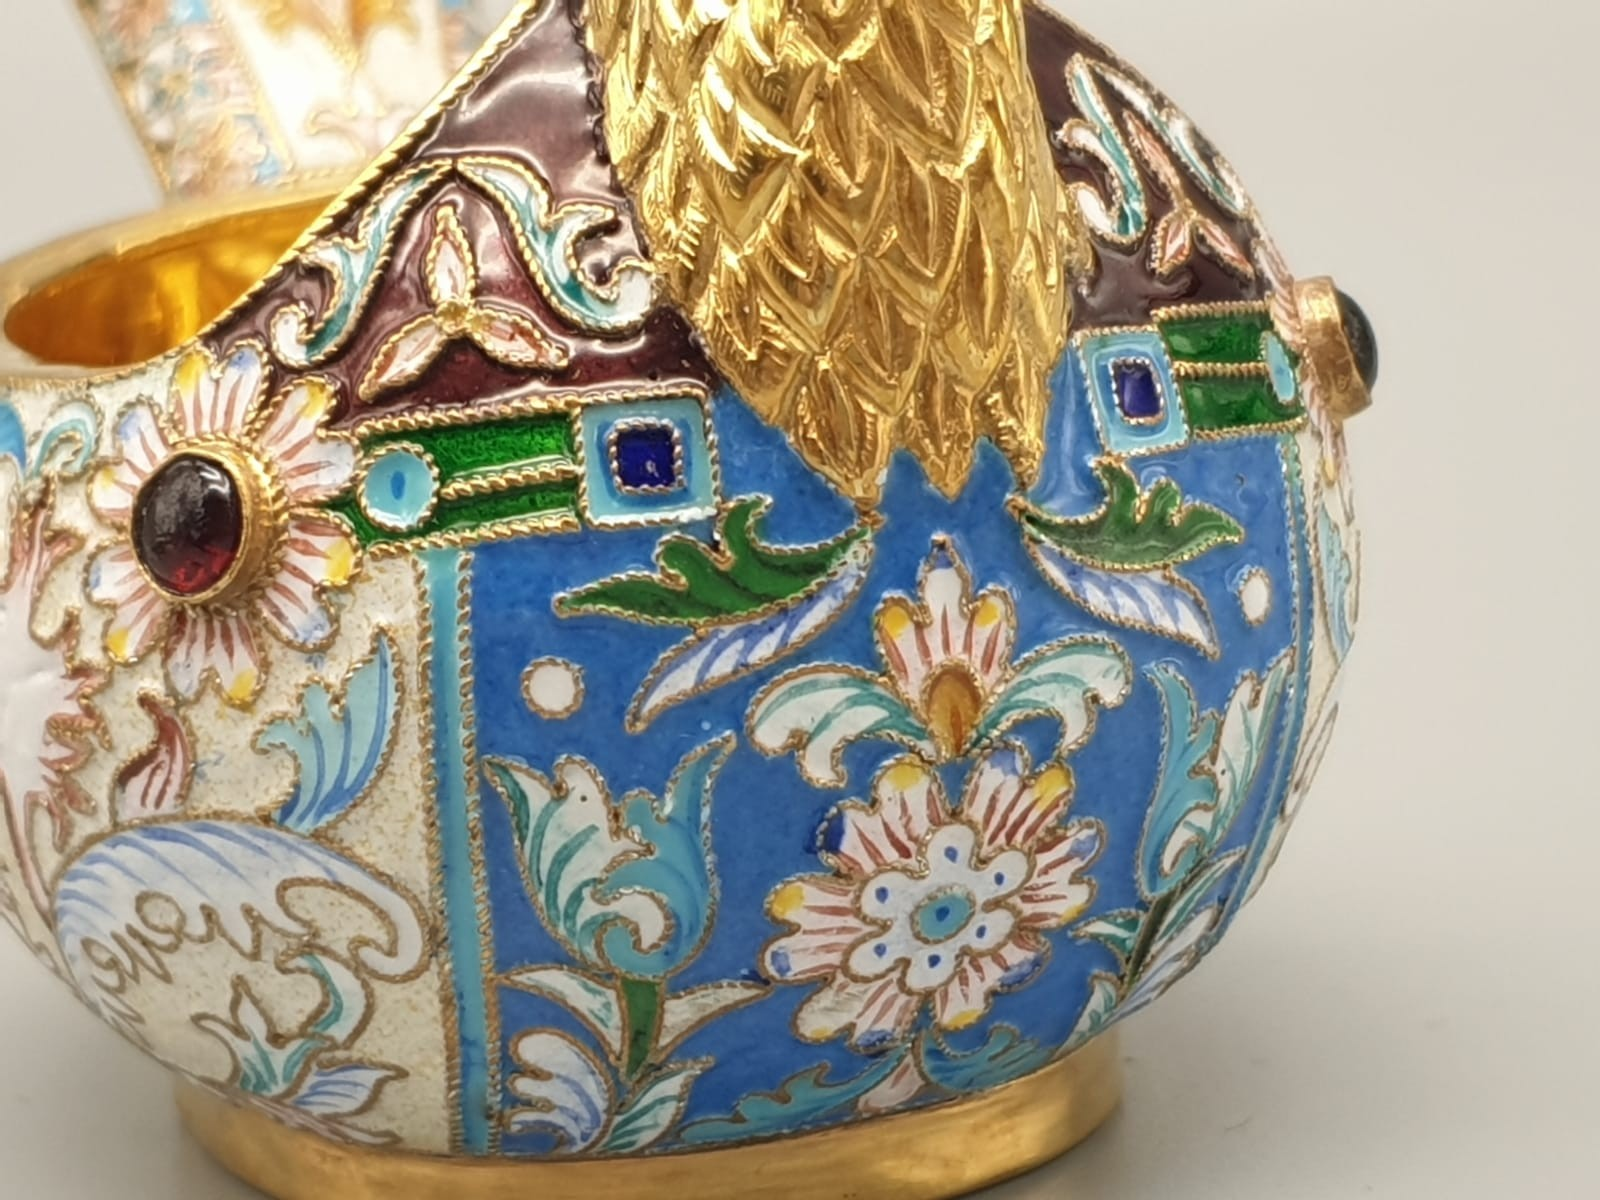 Pair of Russian 20th century silver enamel gemset kavosch bowl in the form of birds, an exquisite - Image 13 of 29